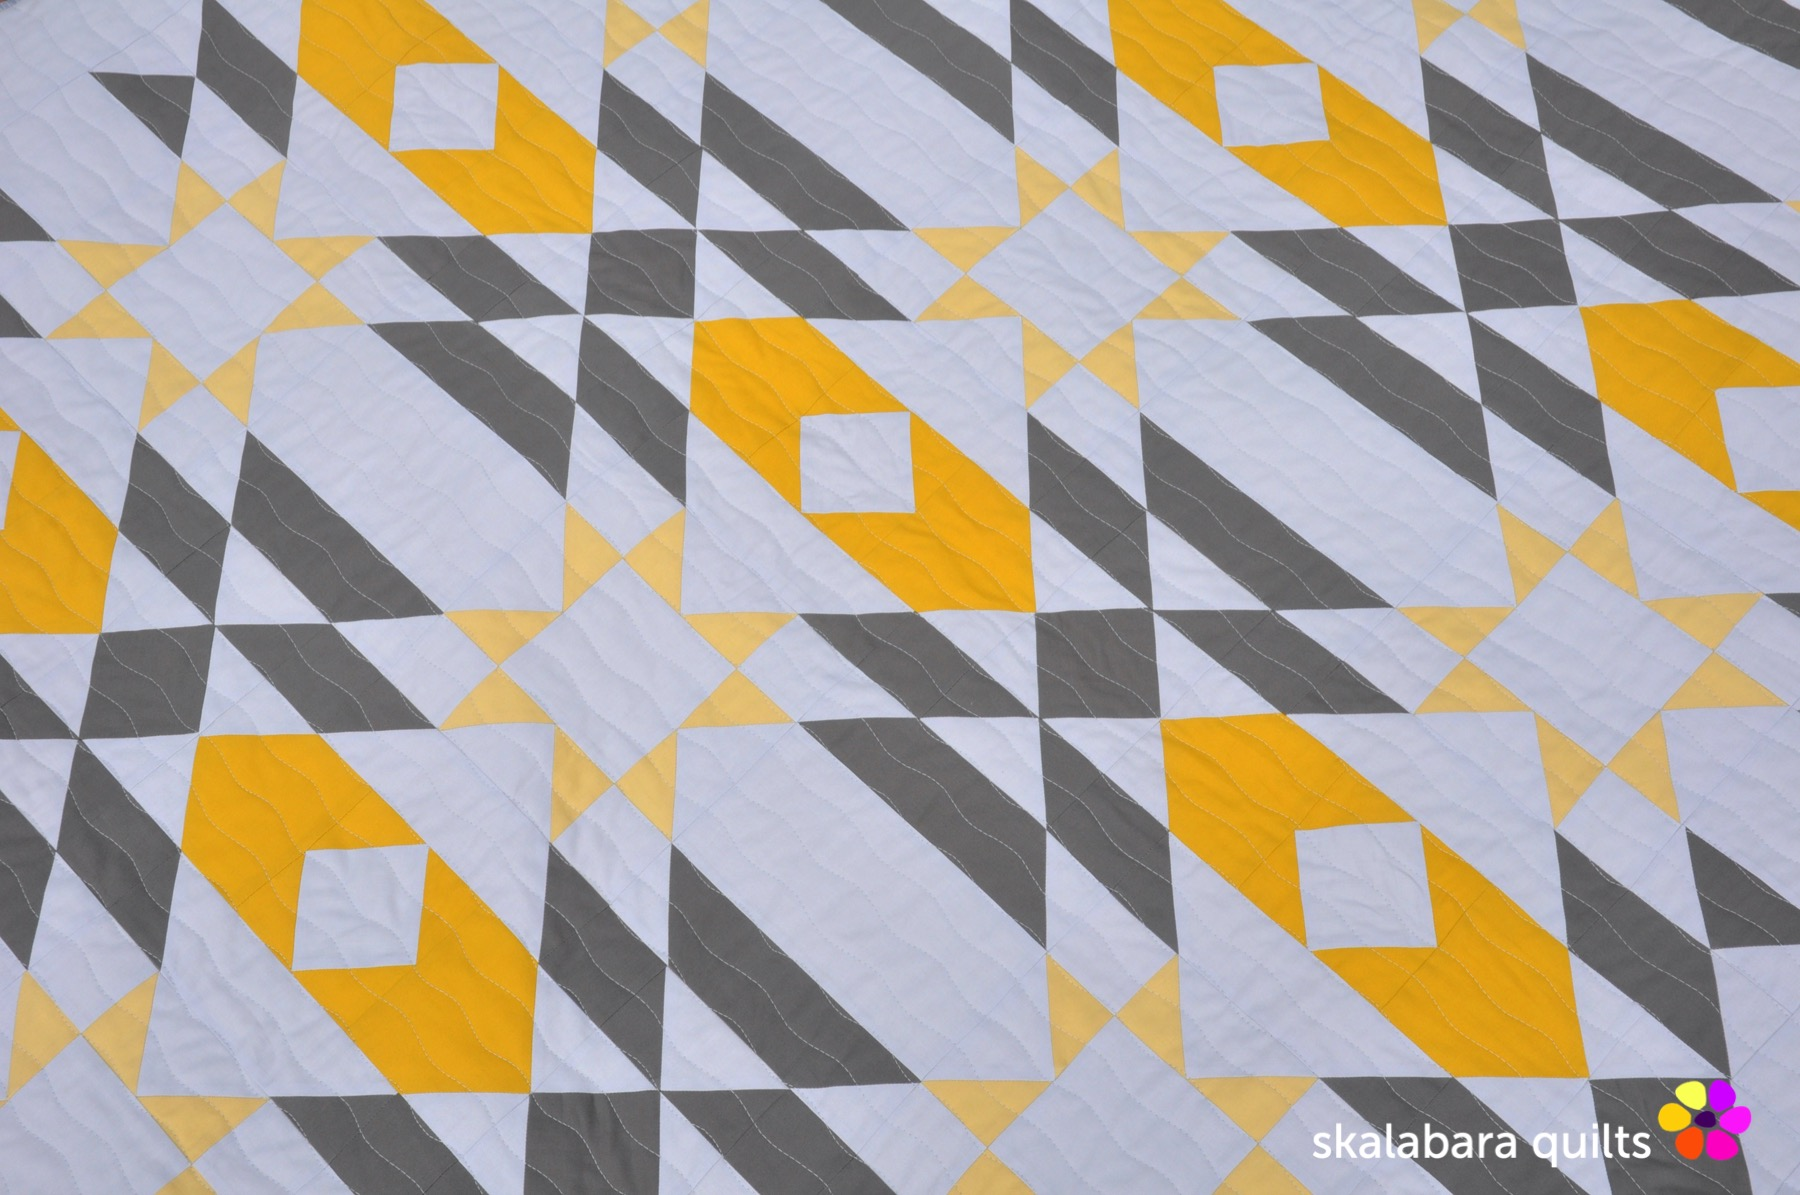 atmosphere quilt 6 - skalabara quilts